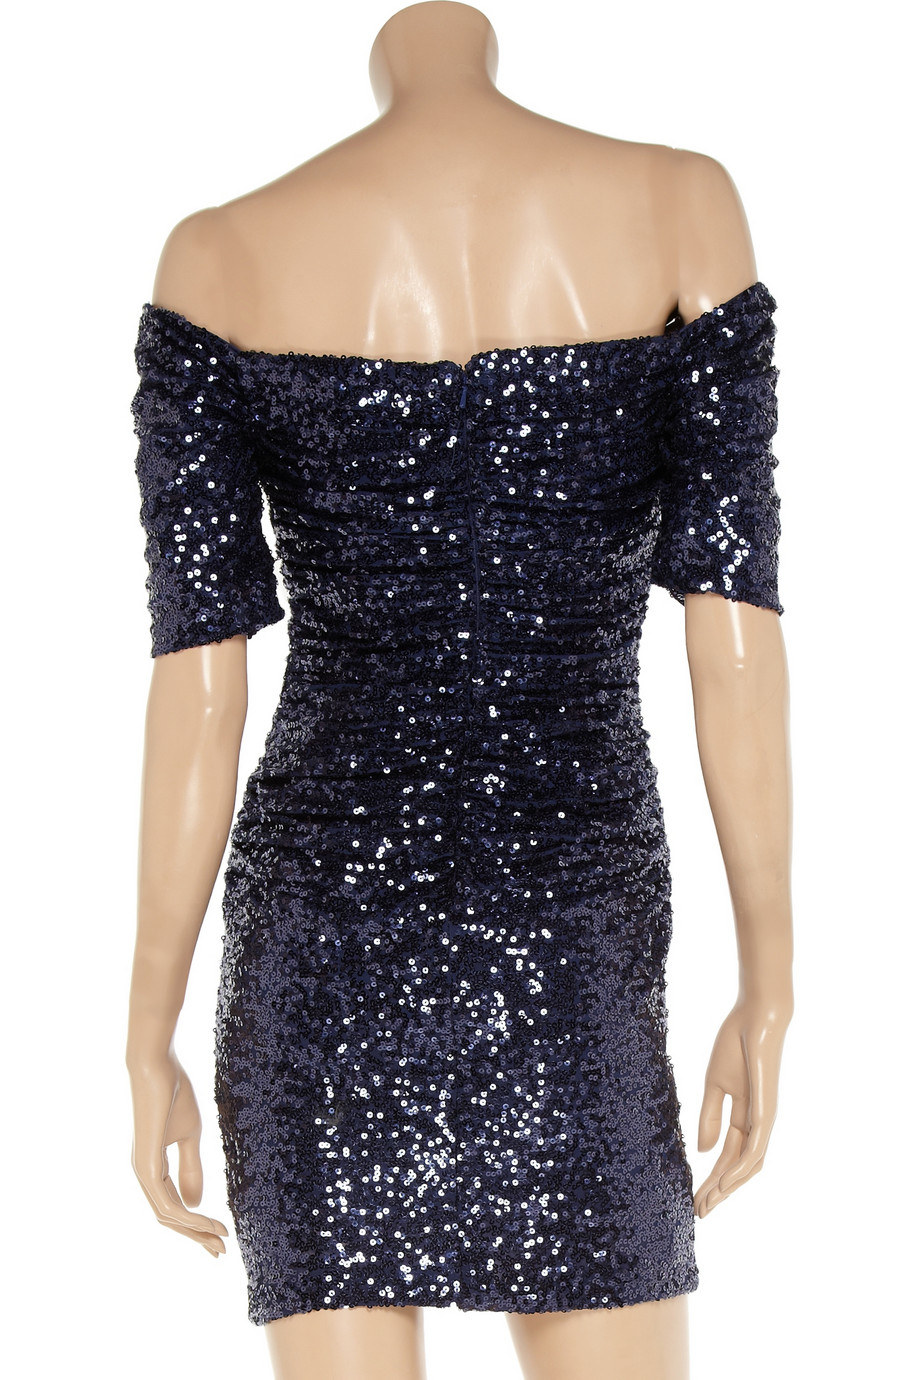 Badgley Mischka Synthetic Ruched Sequined Dress In Navy